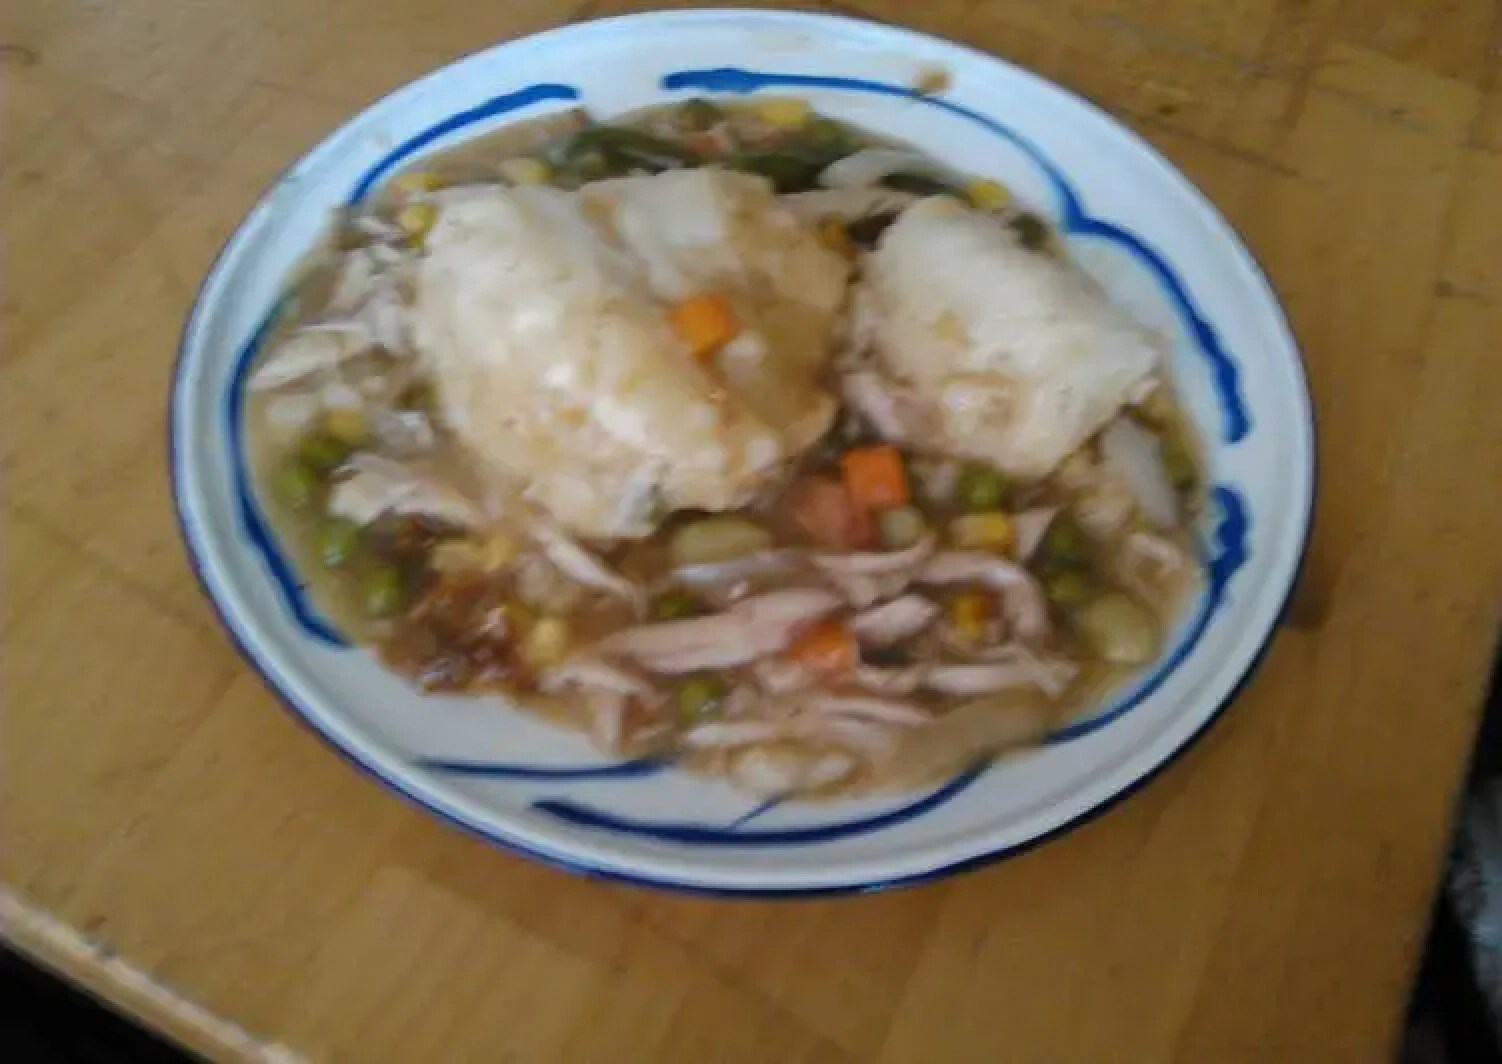 My big sister's chicken and dumplings